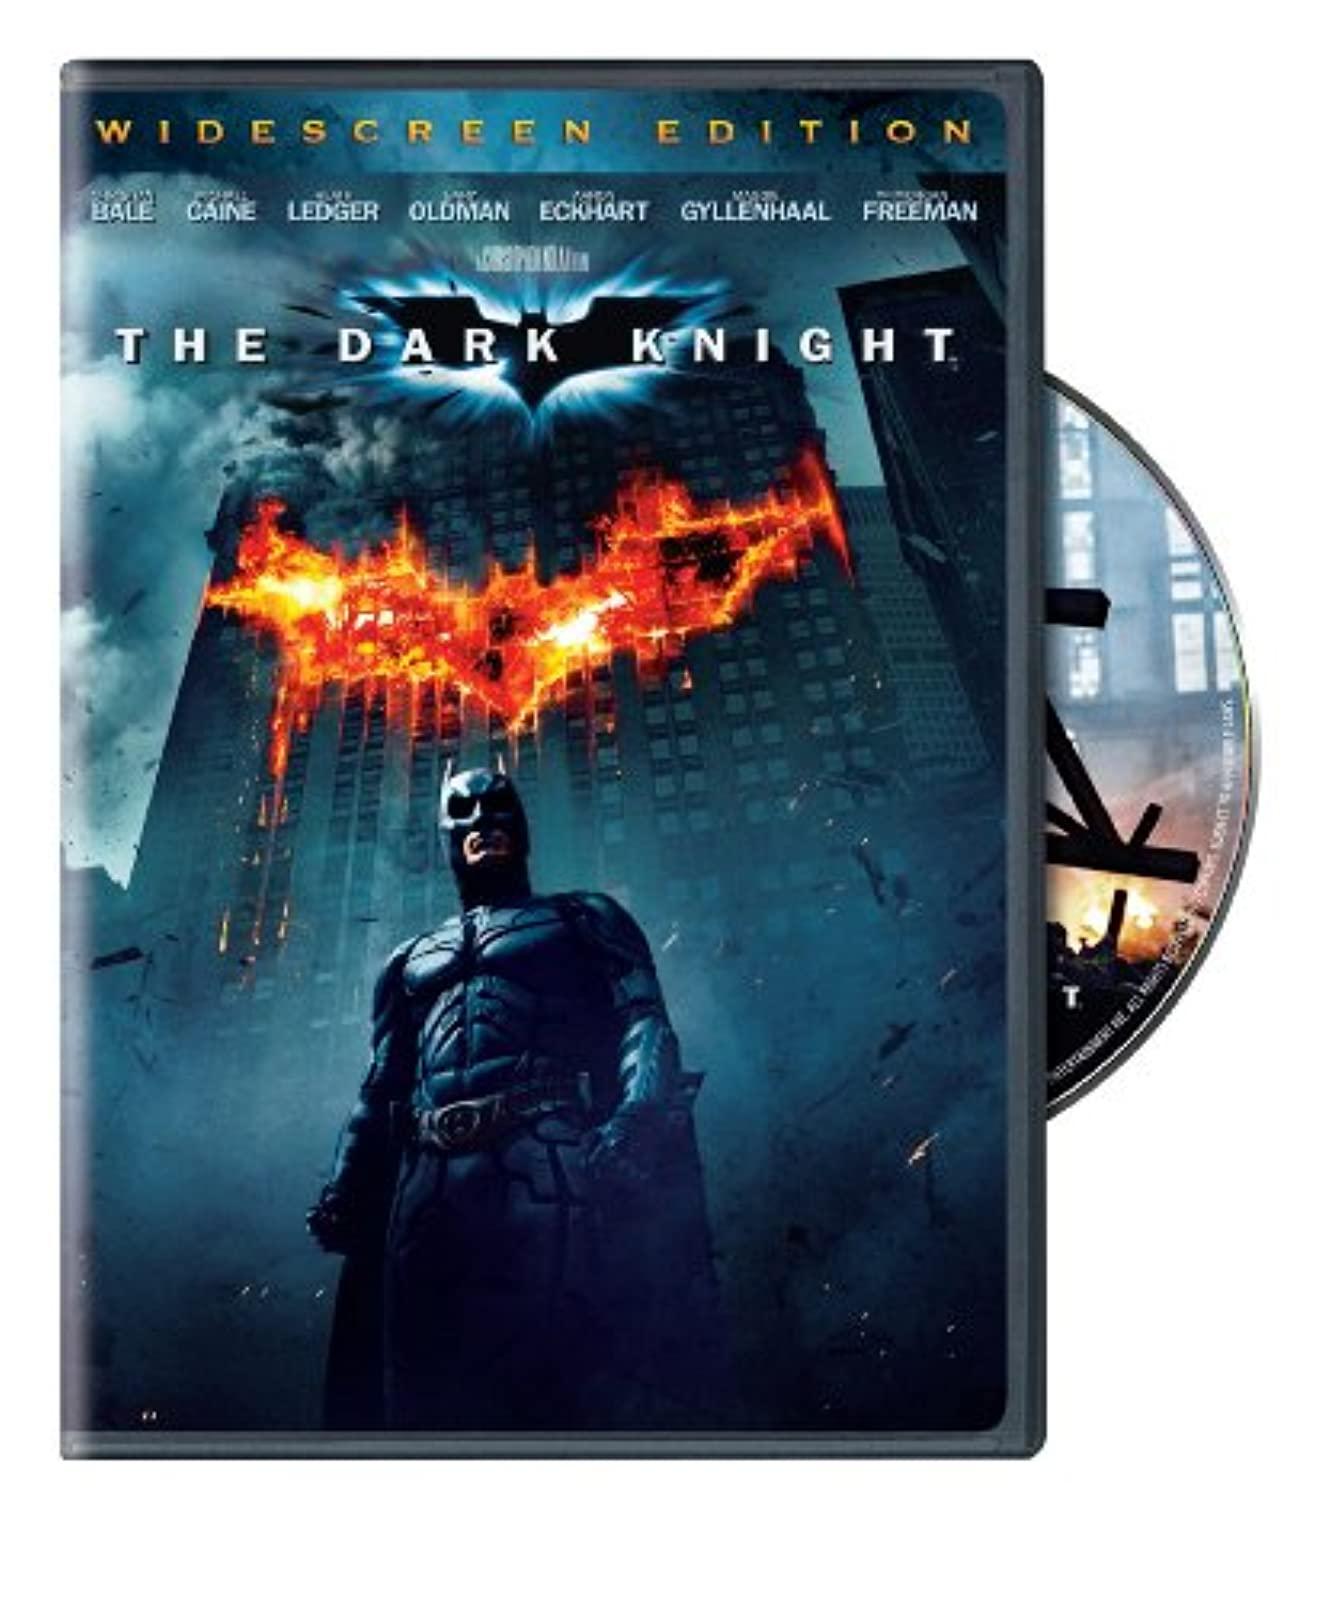 Image 0 of The Dark Knight Single-Disc Widescreen Edition On DVD With Christian